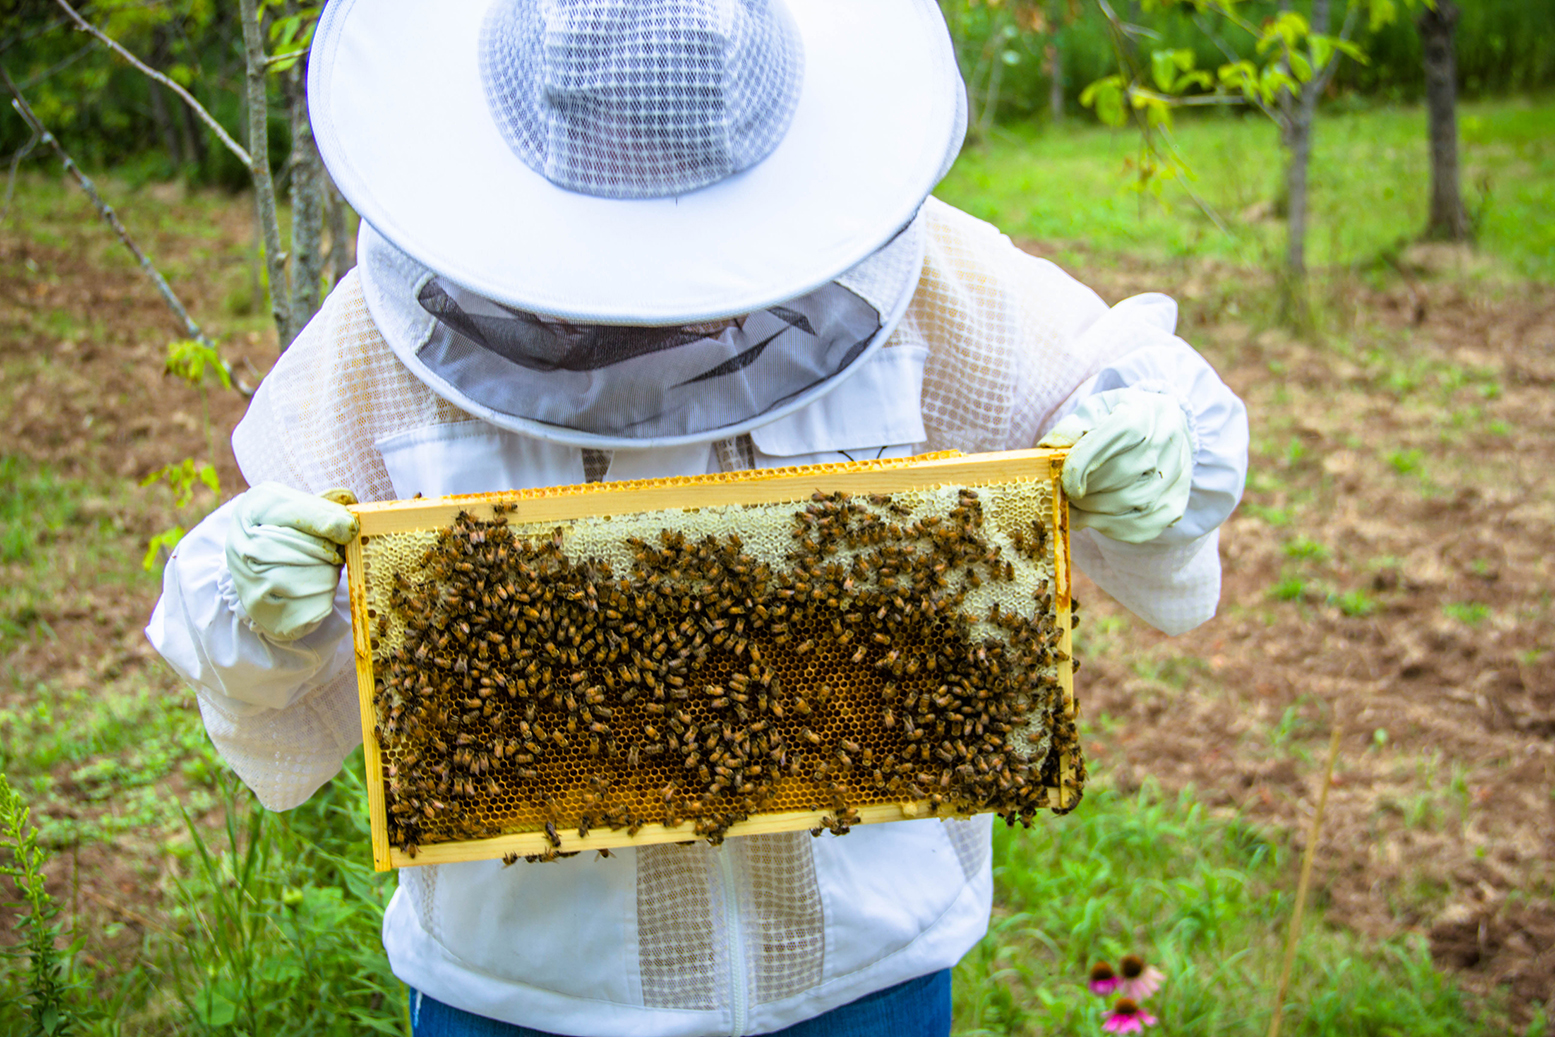 Tips for Beekeeping and Handling Bees